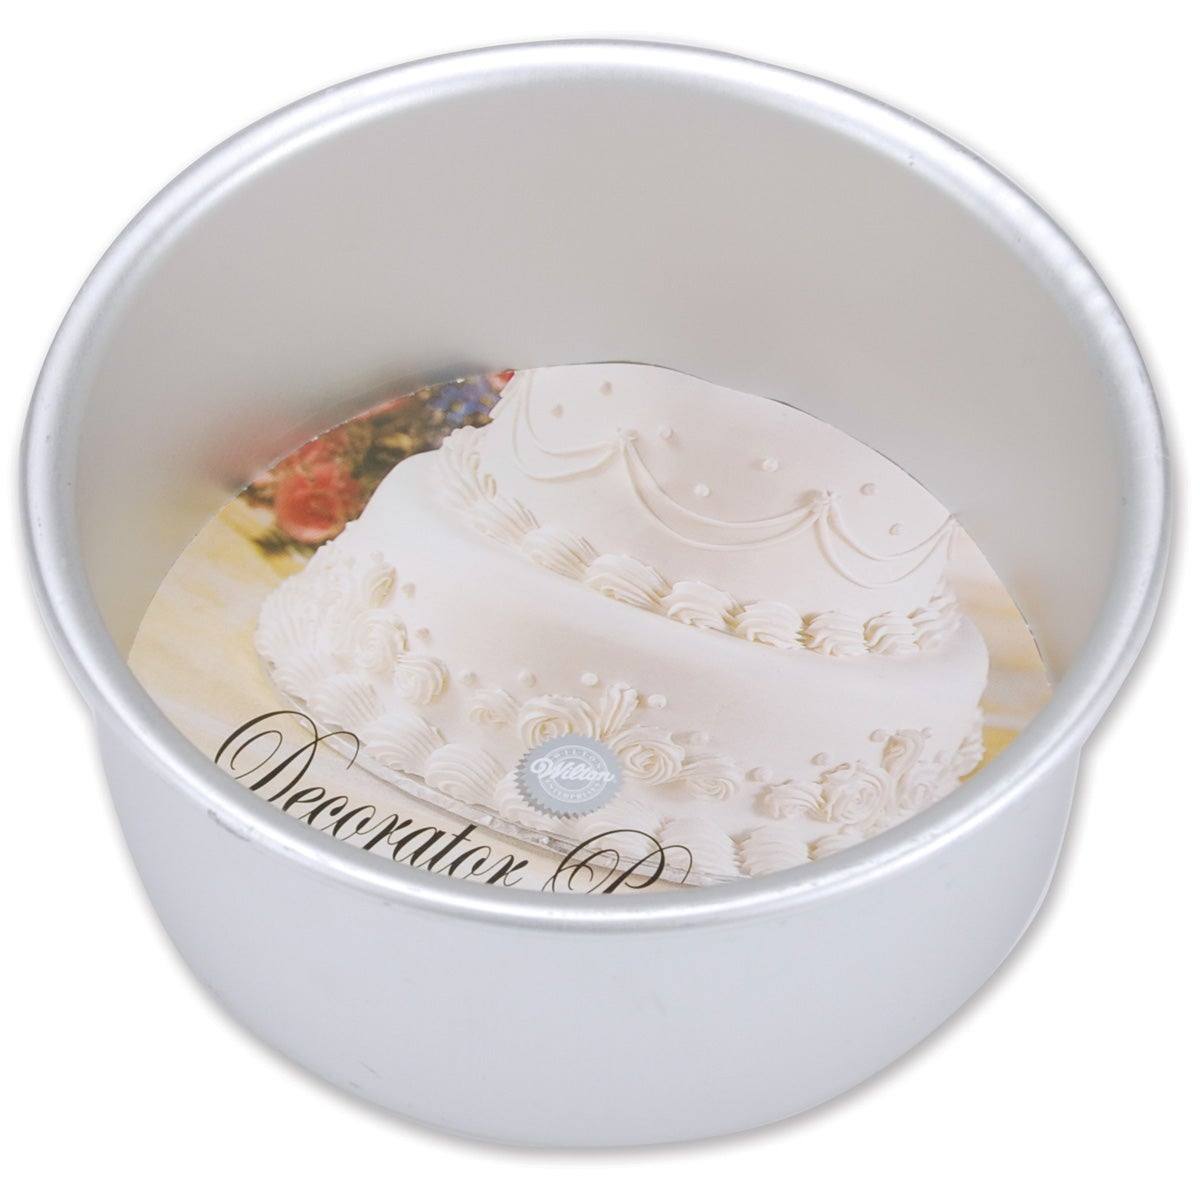 Wilton Decorator Preferred Aluminum Round Cake Pan at Sears.com